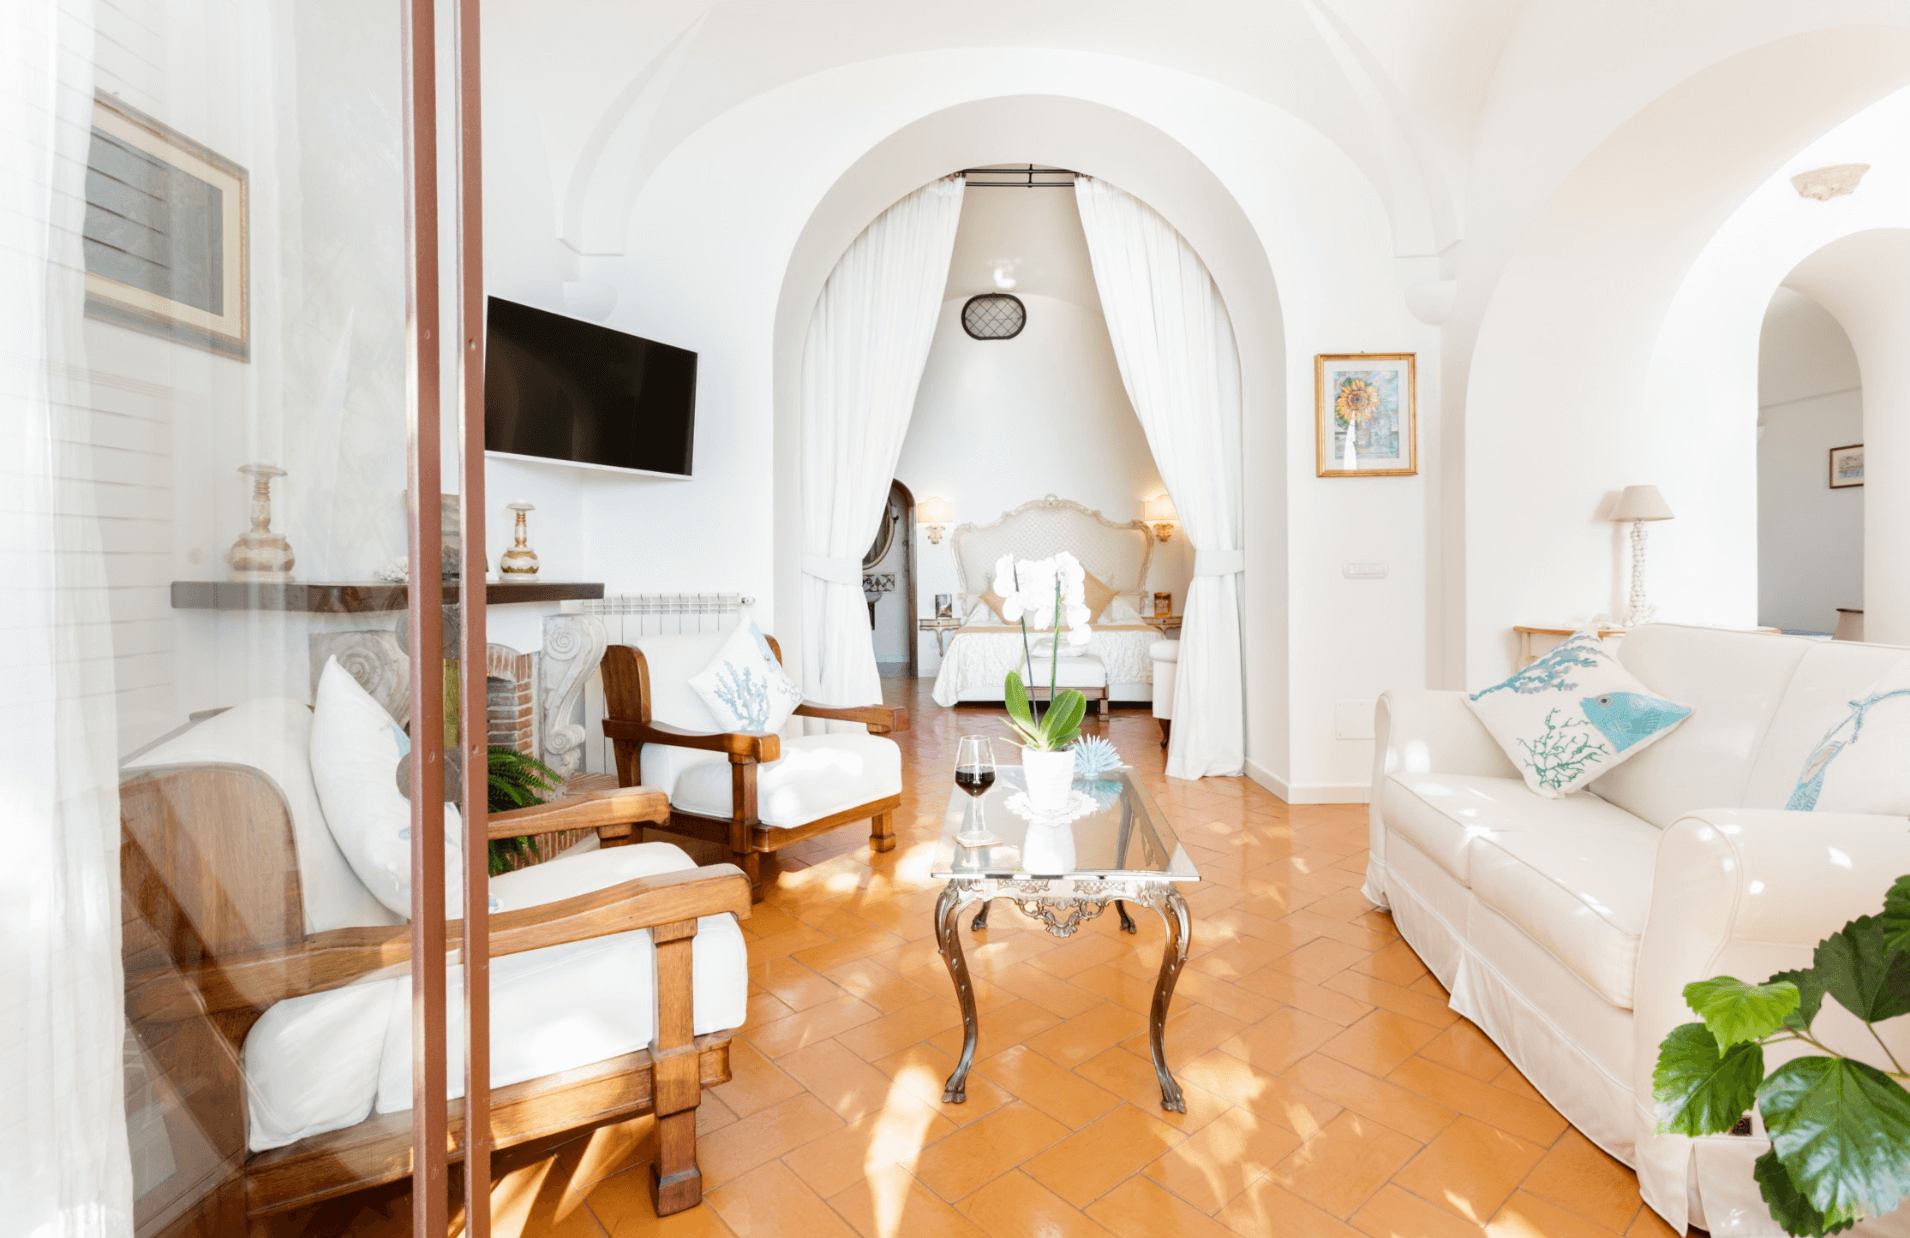 an image of a living room of an airbnb in Positano, Italy